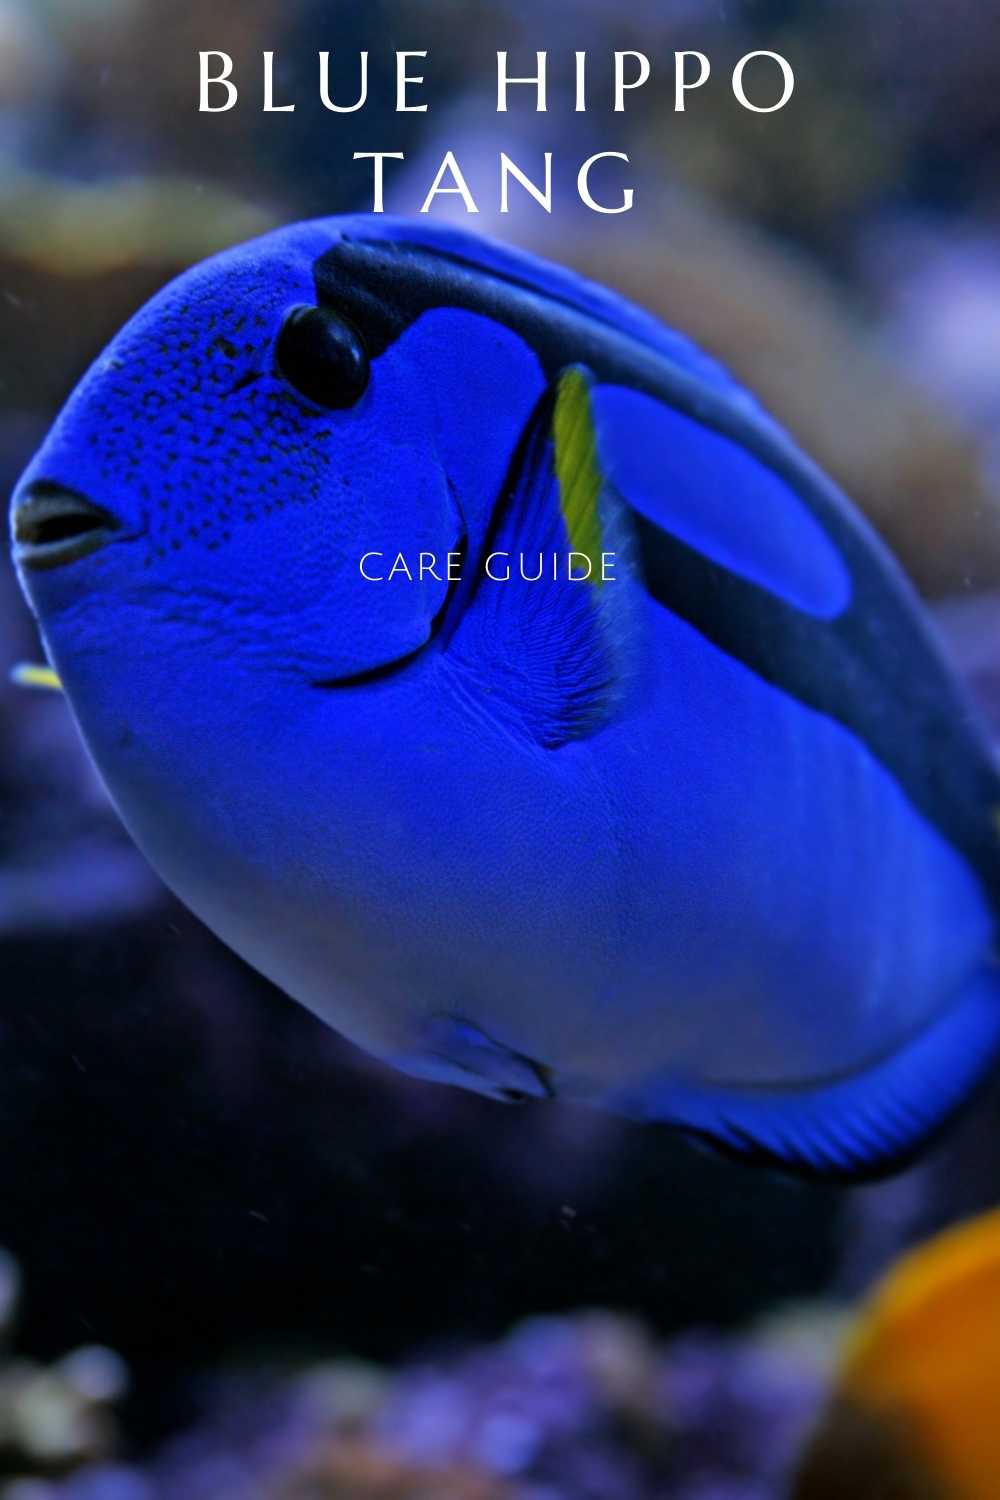 blue hippo tang care guide